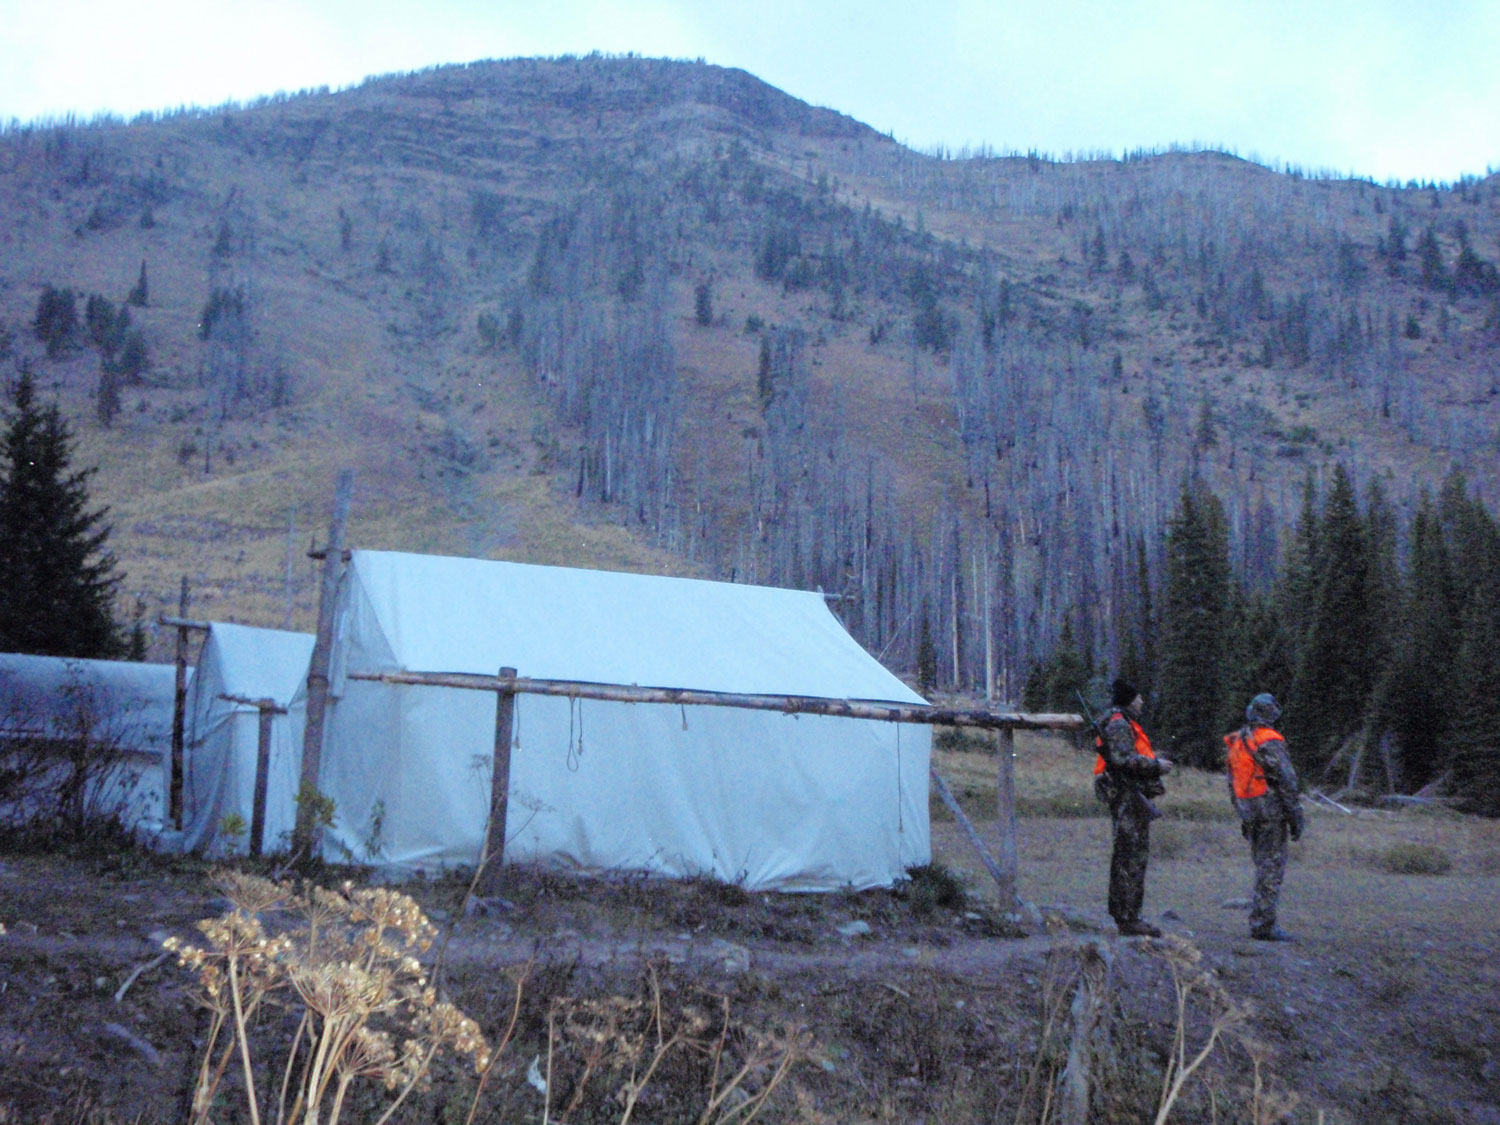 Rich-Ranch-outfitter-camp-in-The-bob.jpg